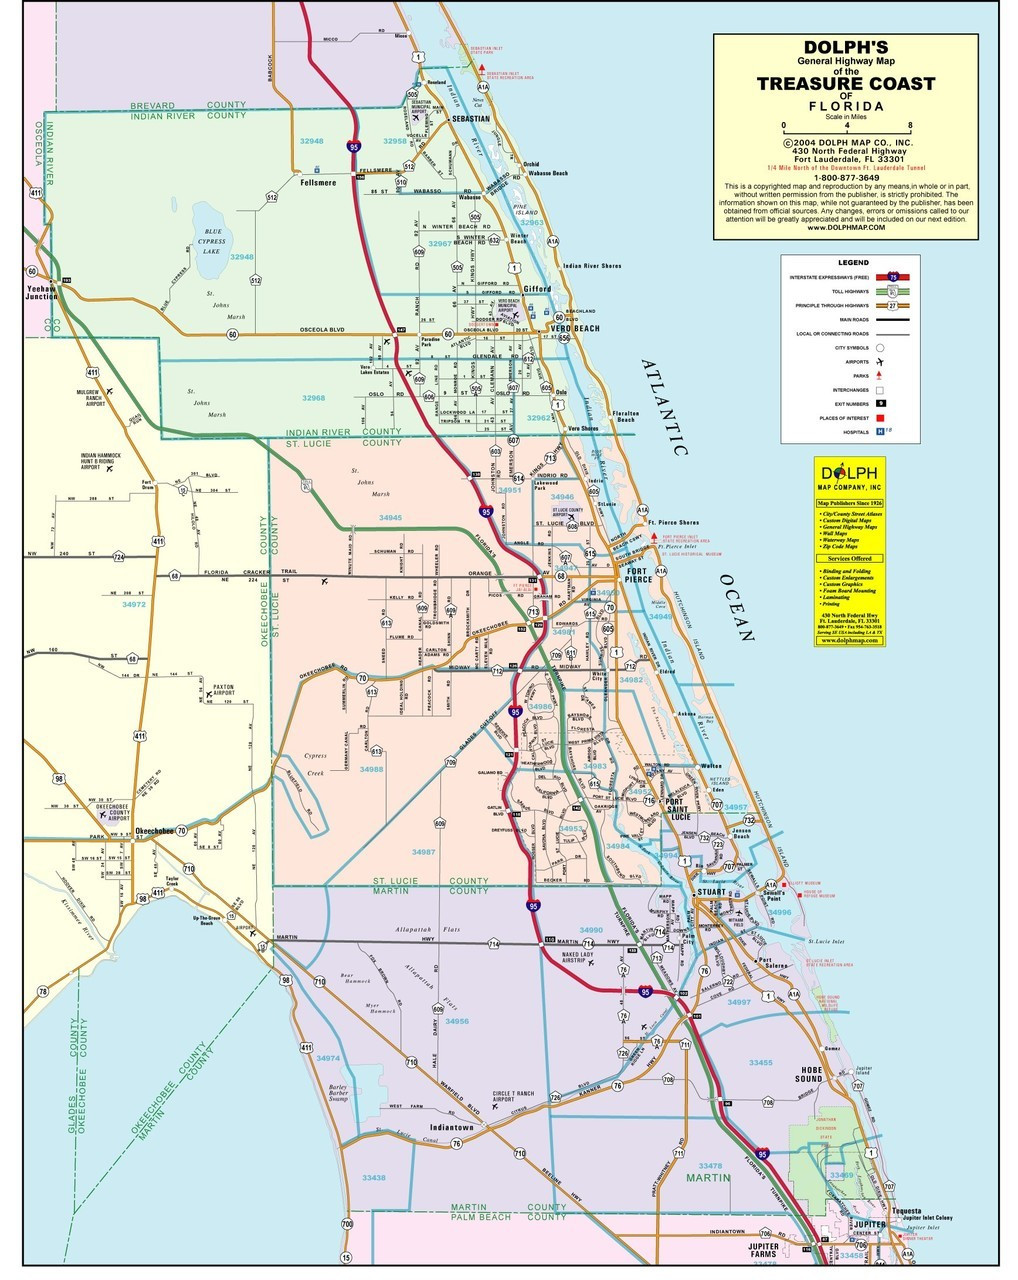 treasure coast zip code map 3 County Treasure Coast General Highway Color Without Zip Codes